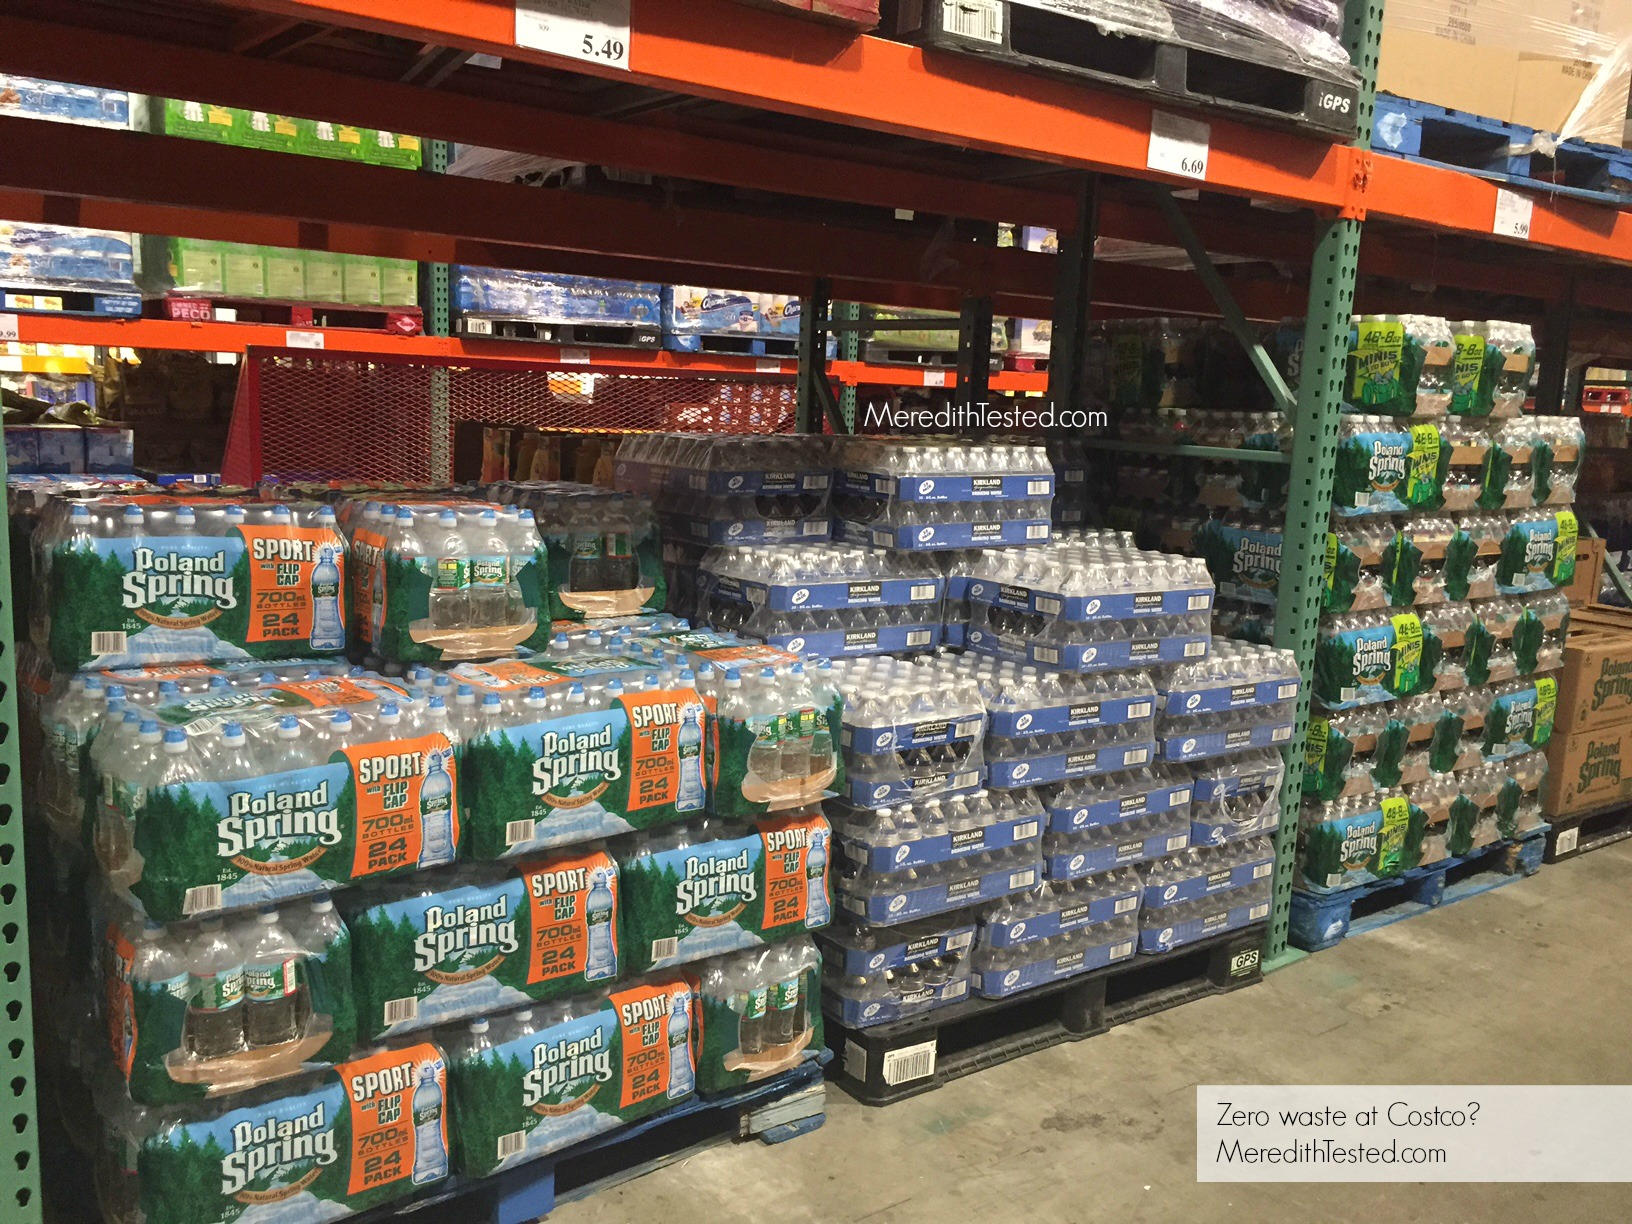 Zero Waste at Costco? – Meredith Tested